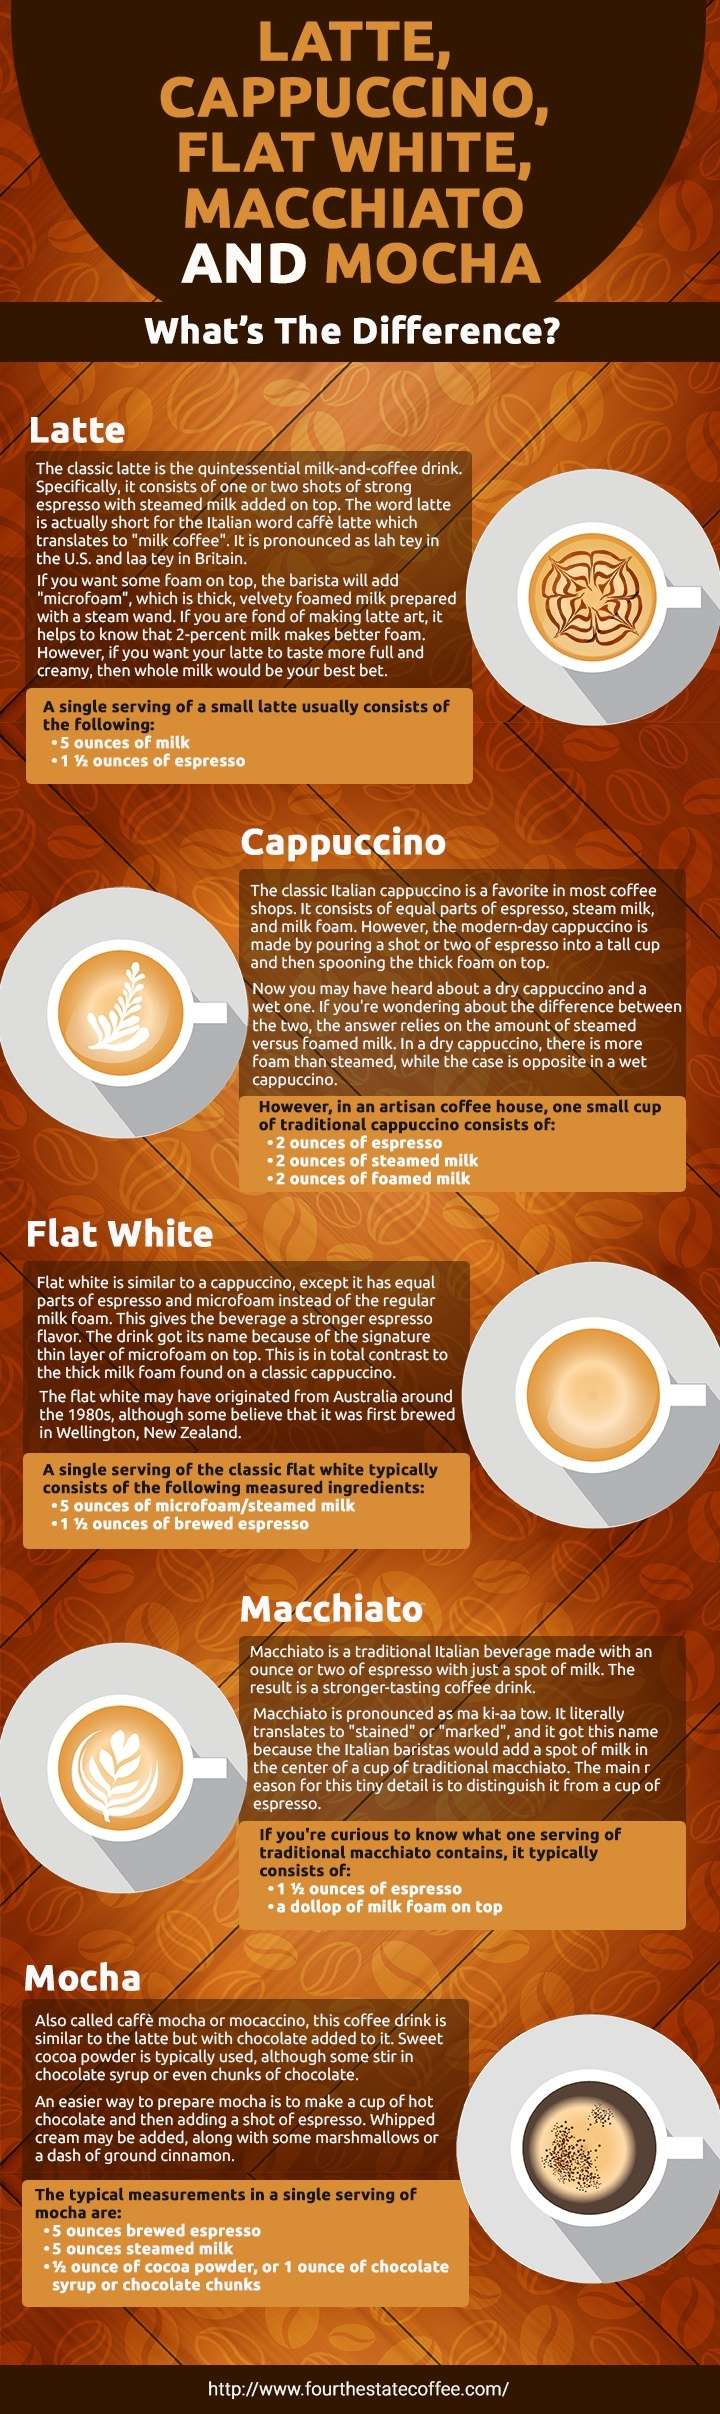 Image Result For Whats The Difference Between A Latte And A Mocha